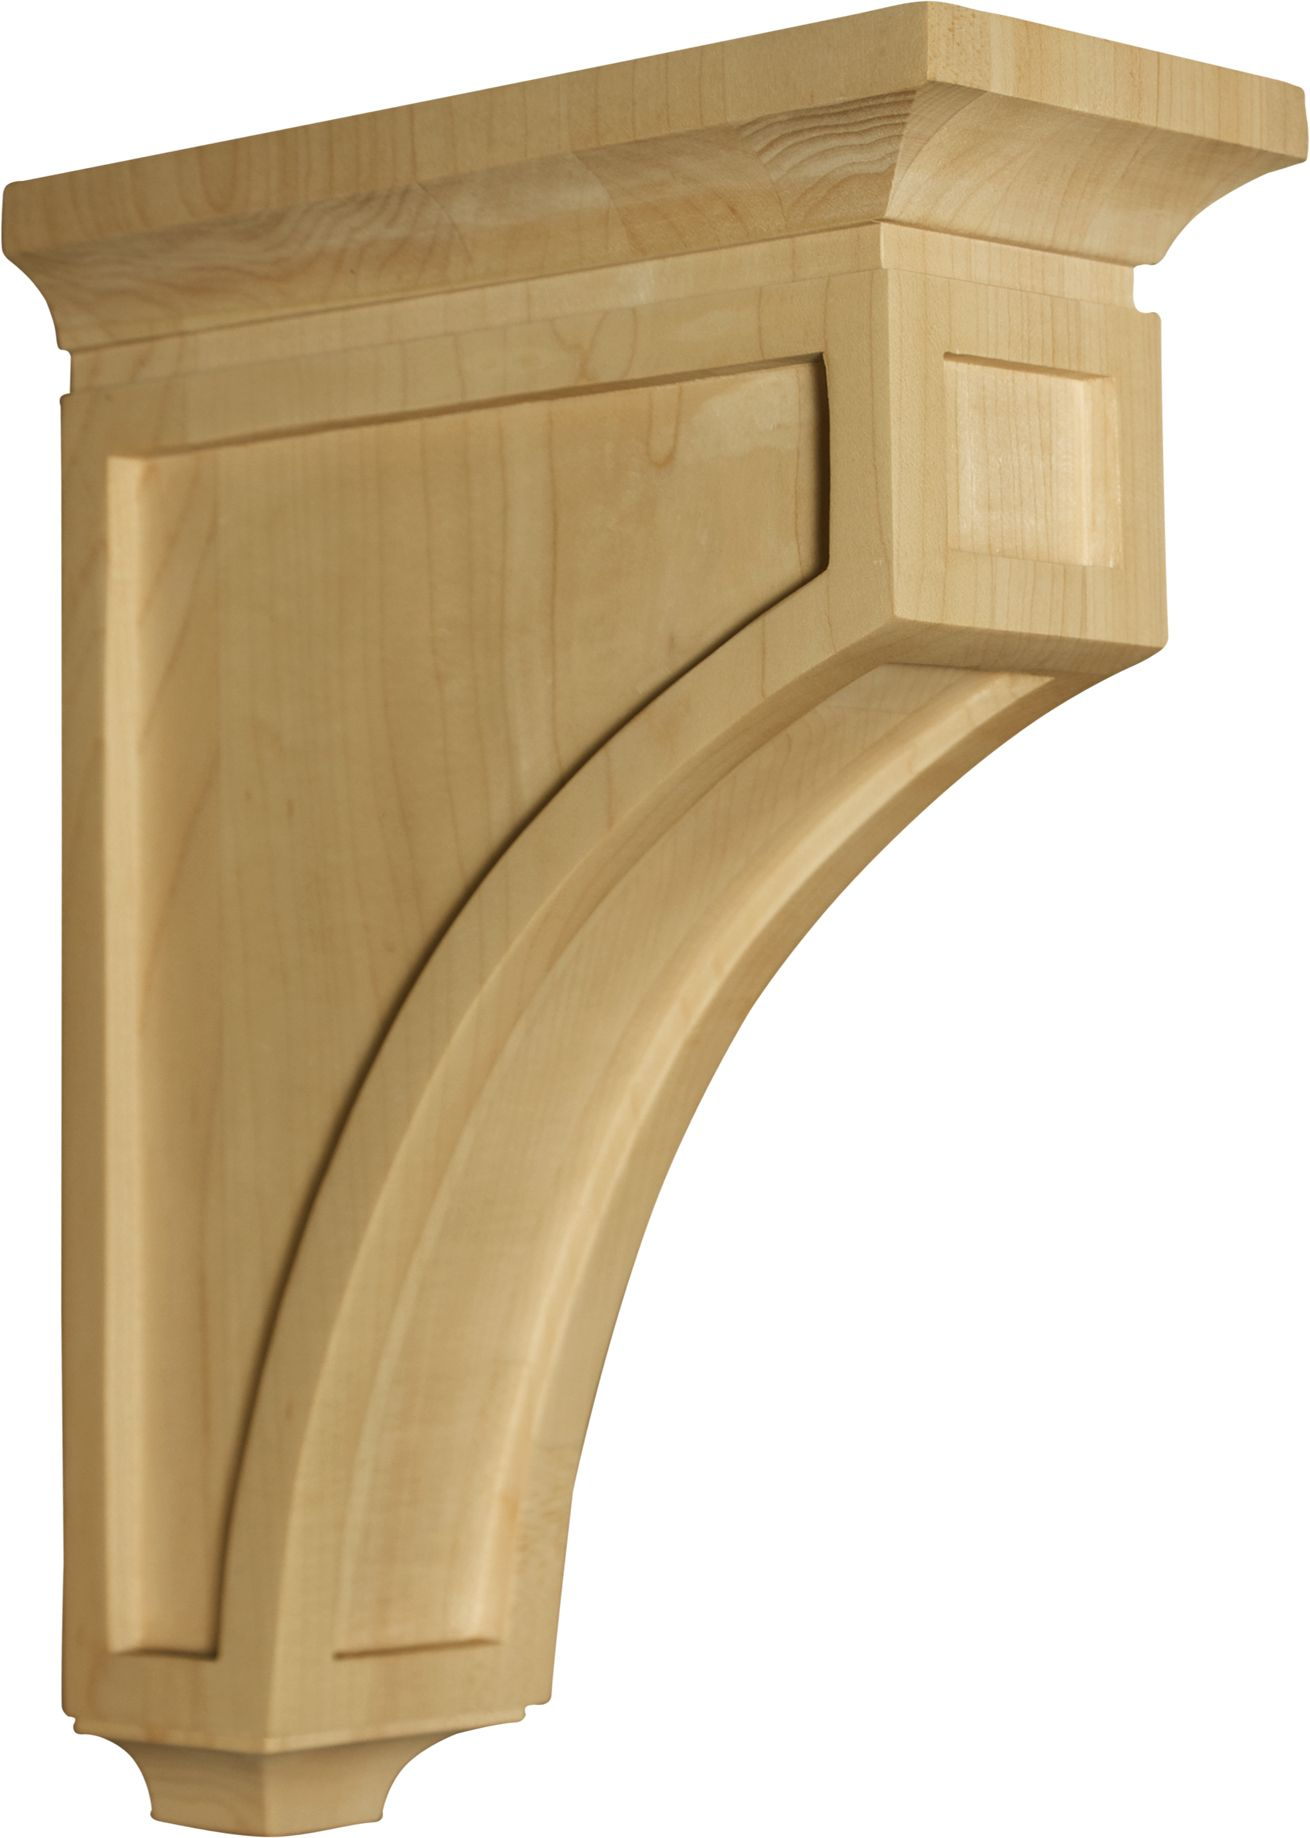 Decorative Wood Corbels And Brackets Solid Decorative Wooden Corbels And Wood Brackets To Add Beauty And Structural Kitchen Design Diy Wooden Corbels Corbels